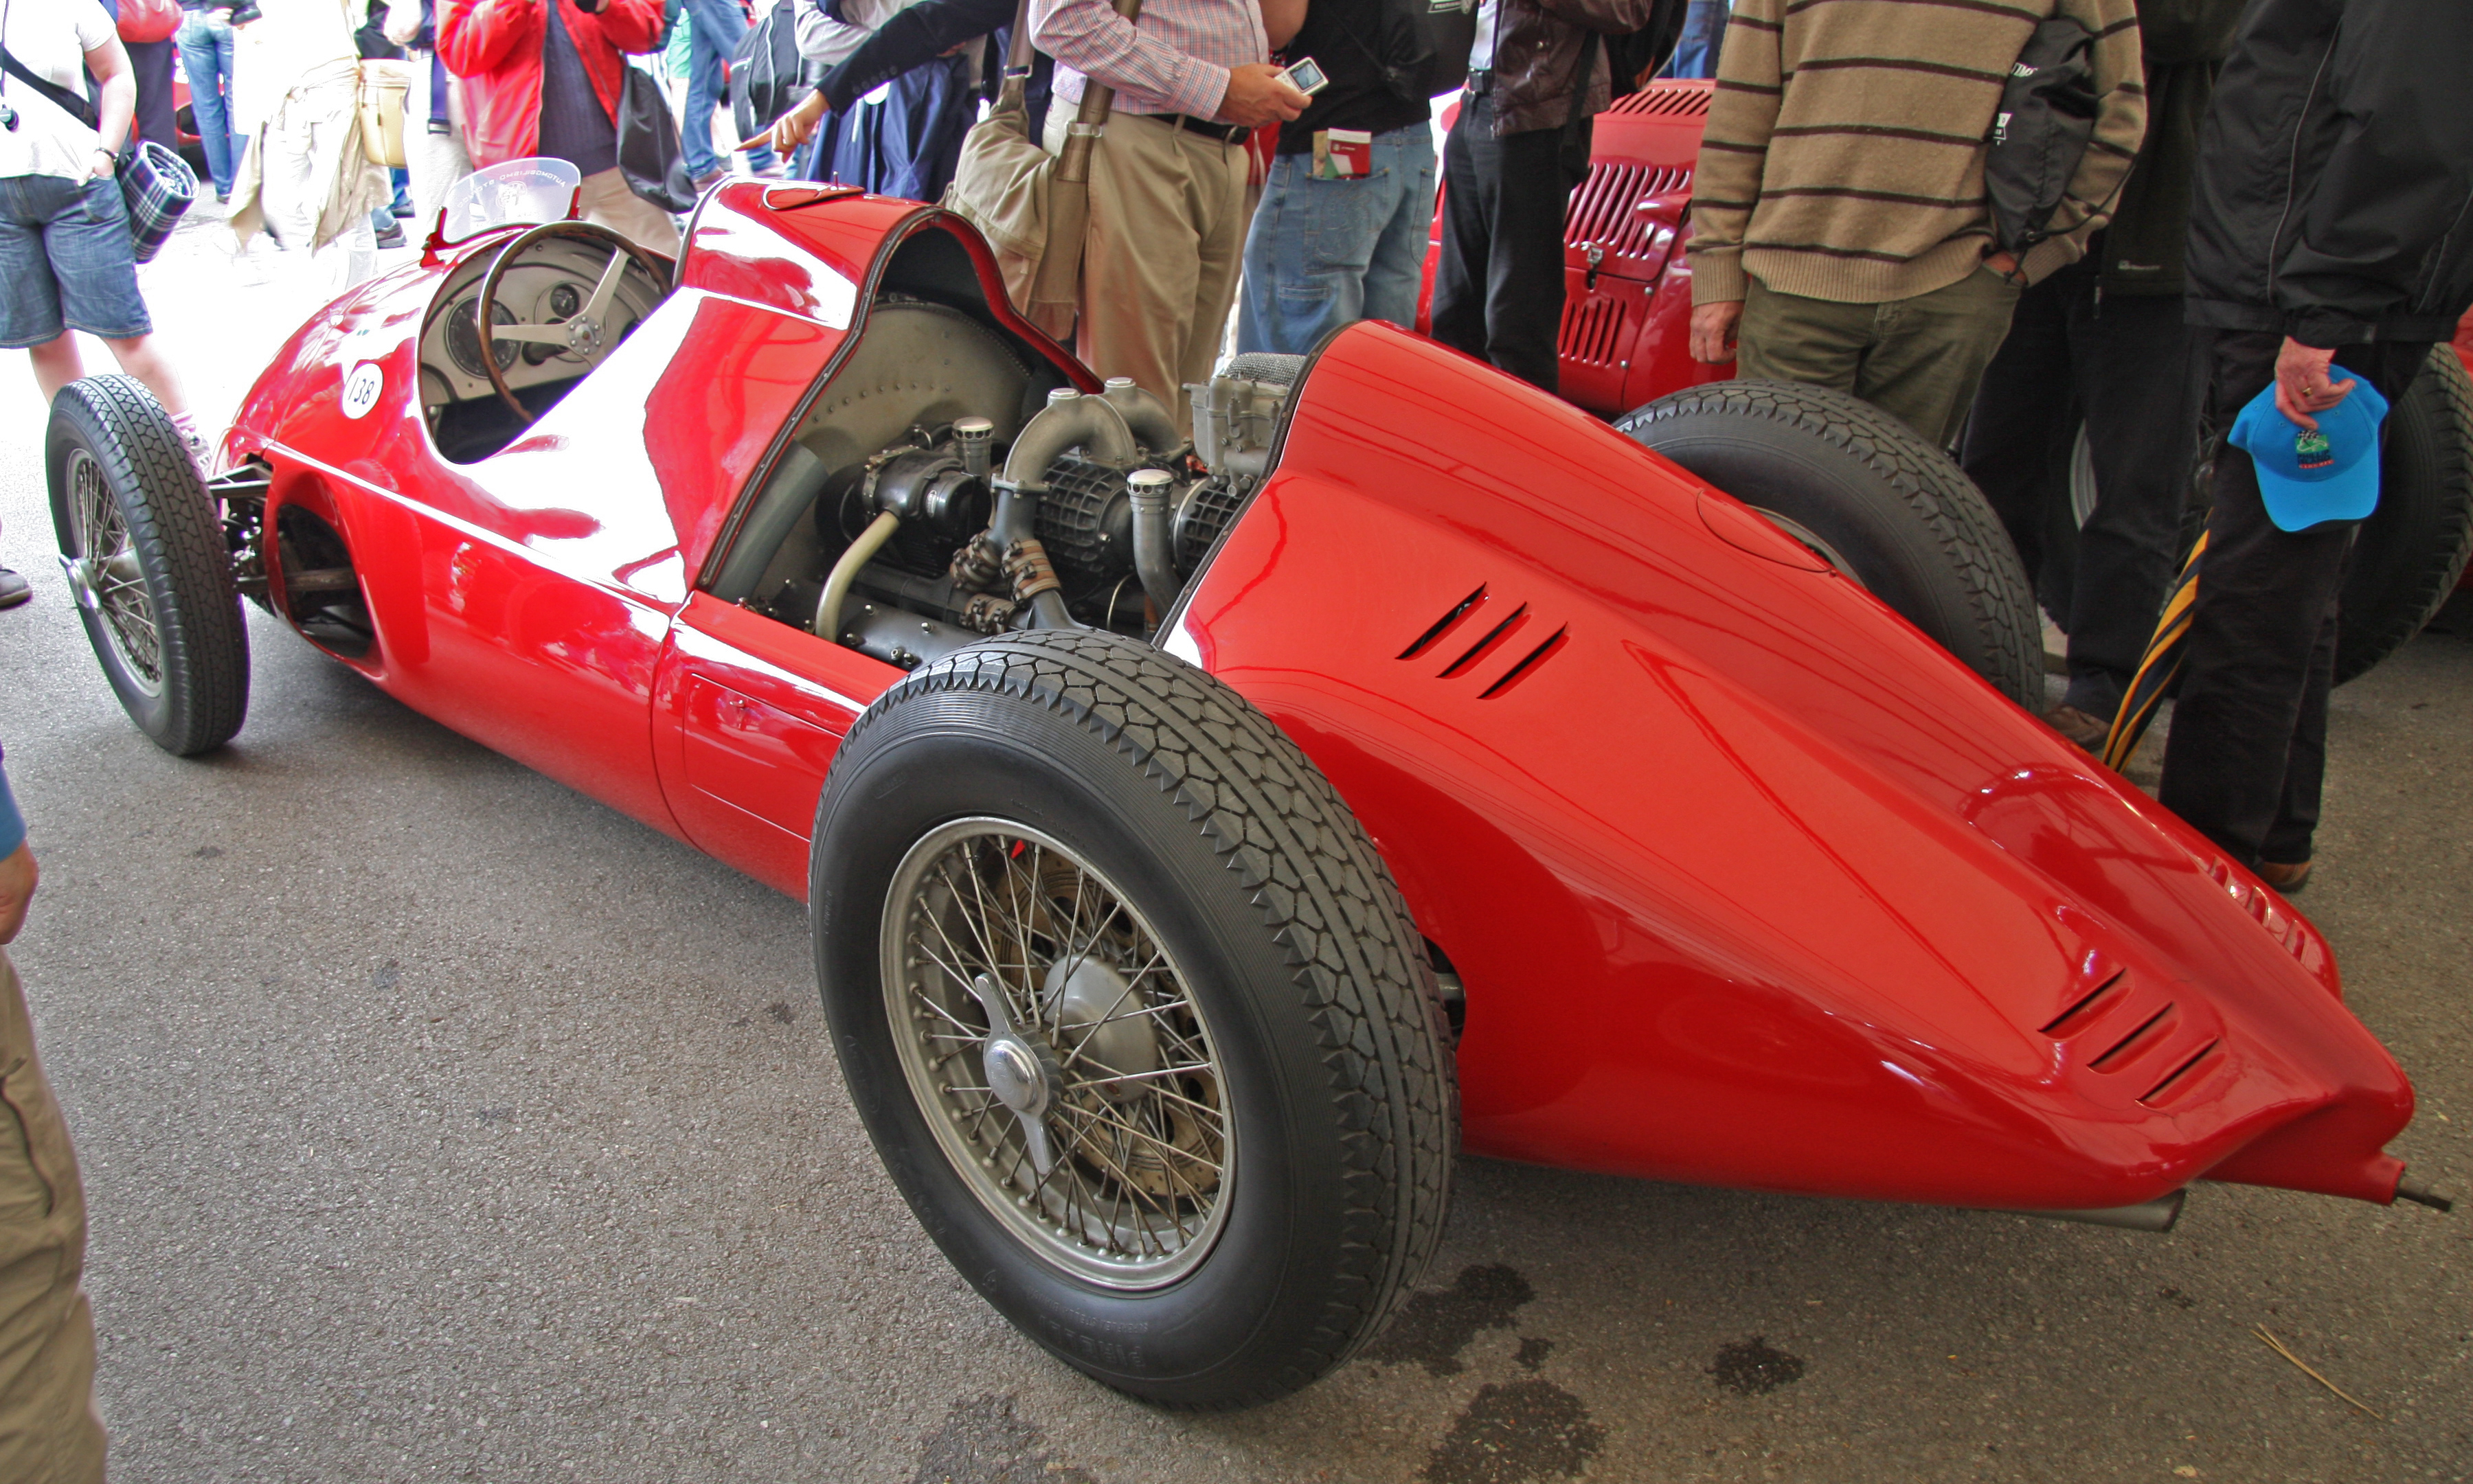 Alfa romeo 512 photo - 1